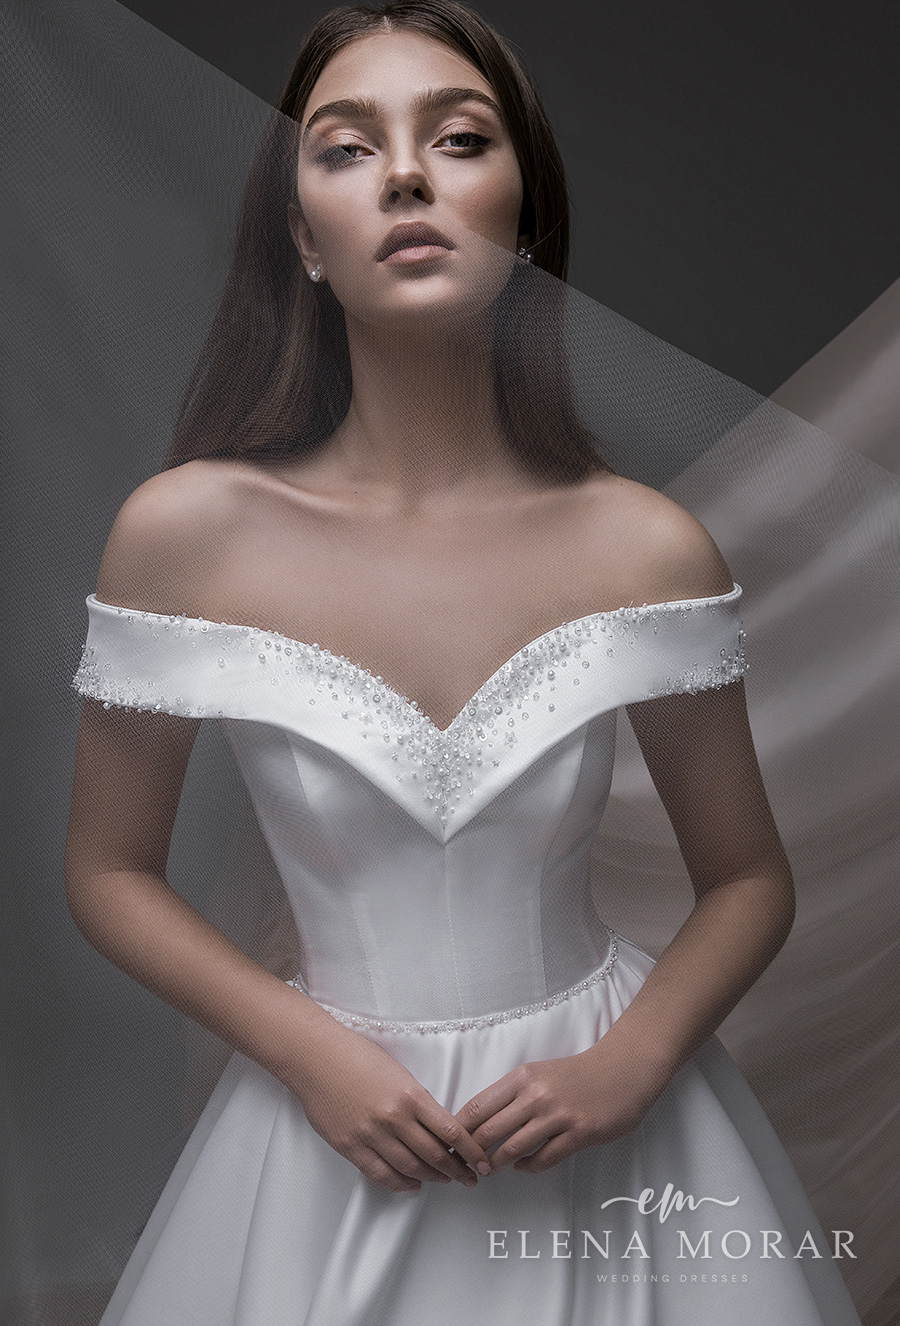 elena morar 2021 desert rose bridal off shoulder v neck simple minimalist elegant princess ball gown a line wedding dress mid back chapel train (007) zv